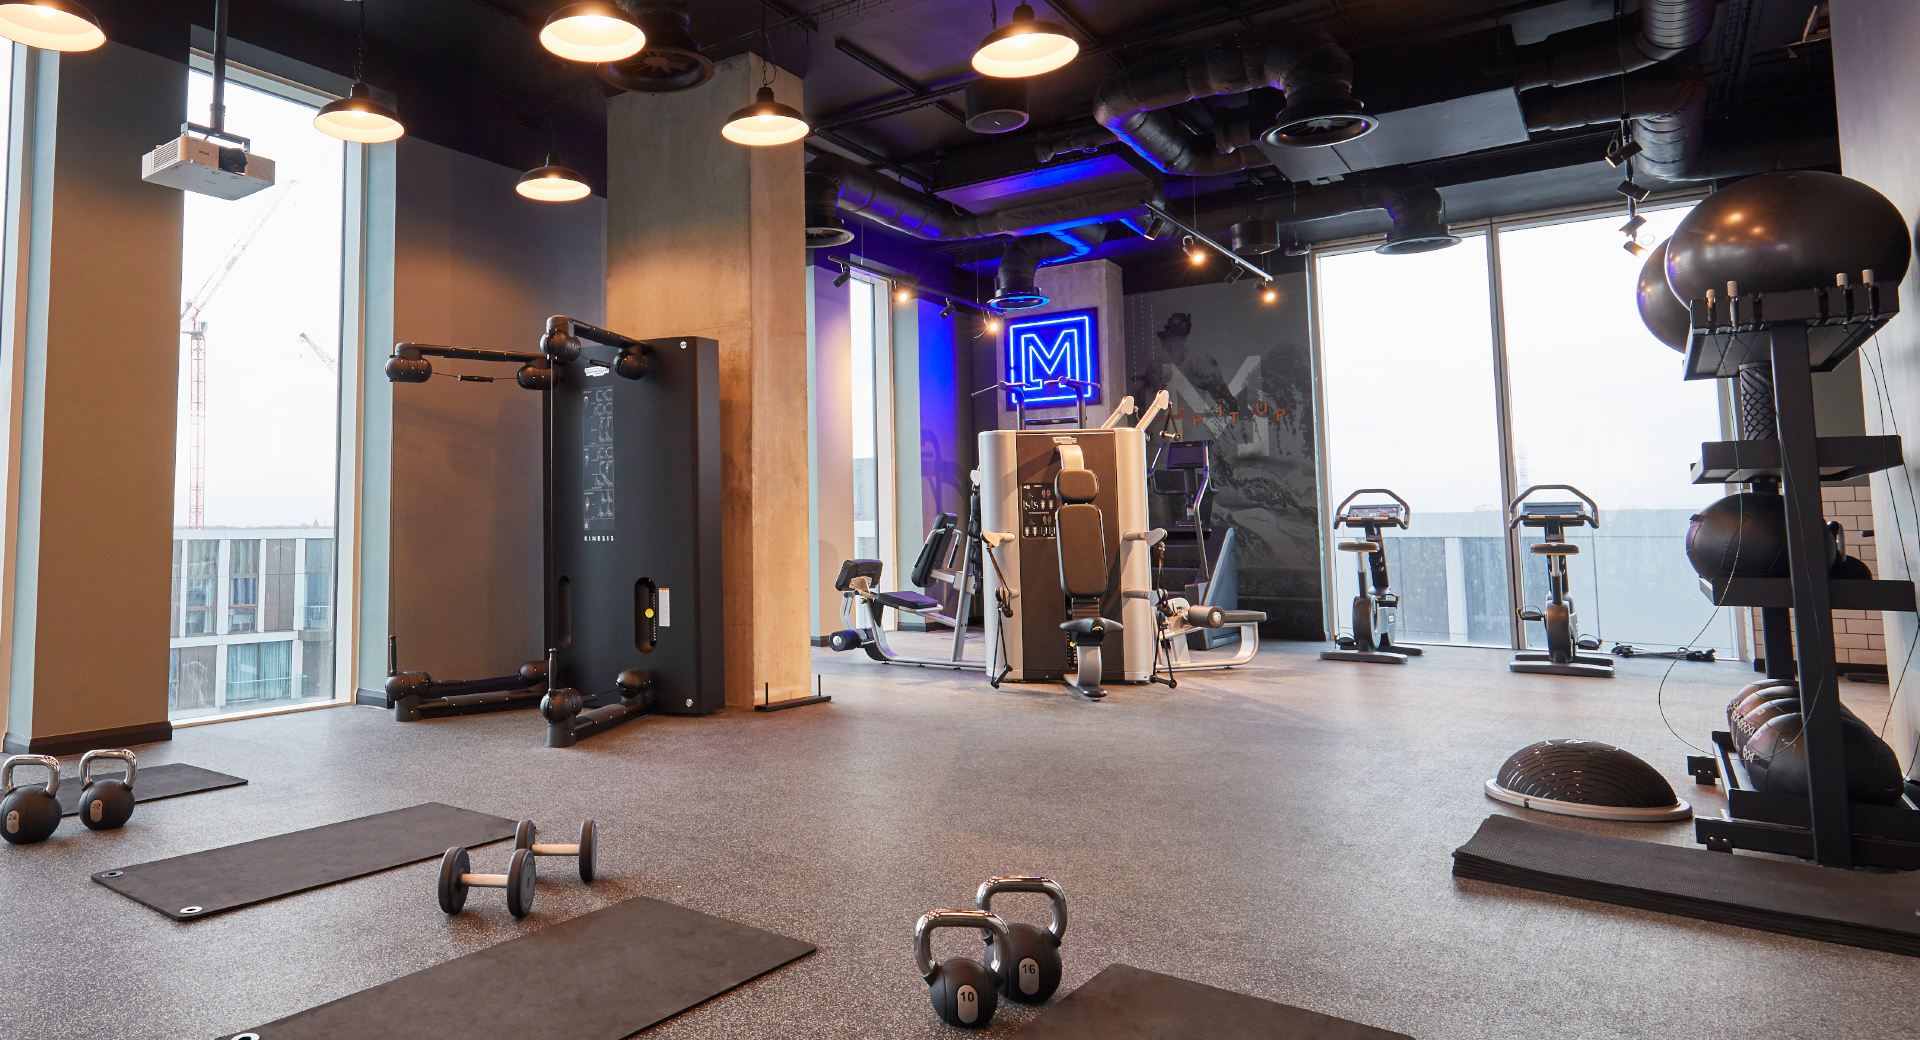 Gym studio area with kettlebells, mats and gym equipment